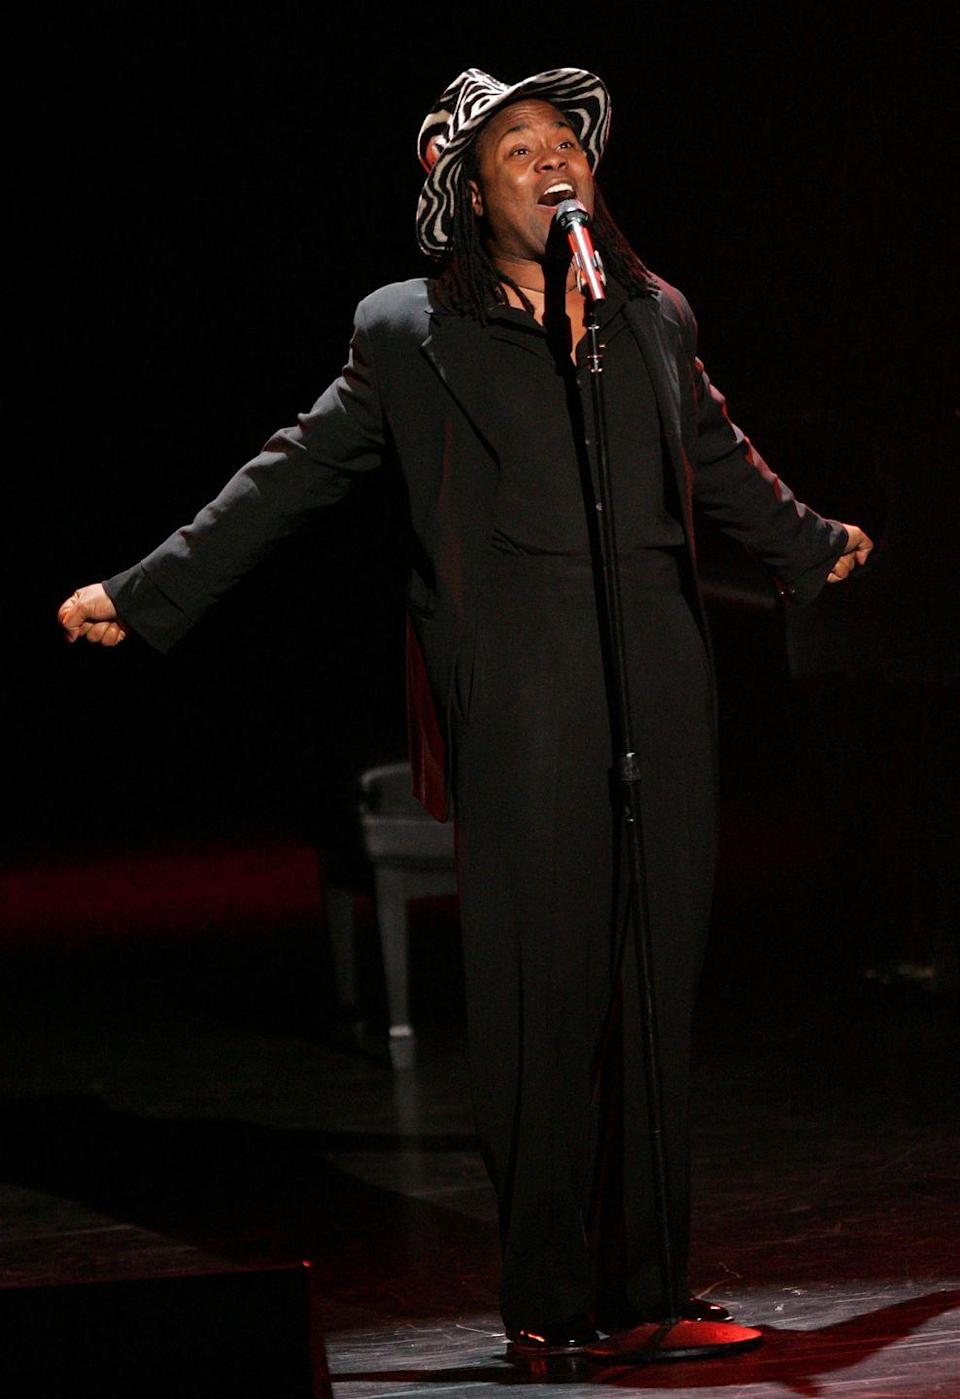 <p>Porters sings at the Actors Fund S.T.A.G.E. Too Tribute: Hooray for Love in a black blazer, roomy trousers, and a graphic black-and-white wide-brim hat. </p>